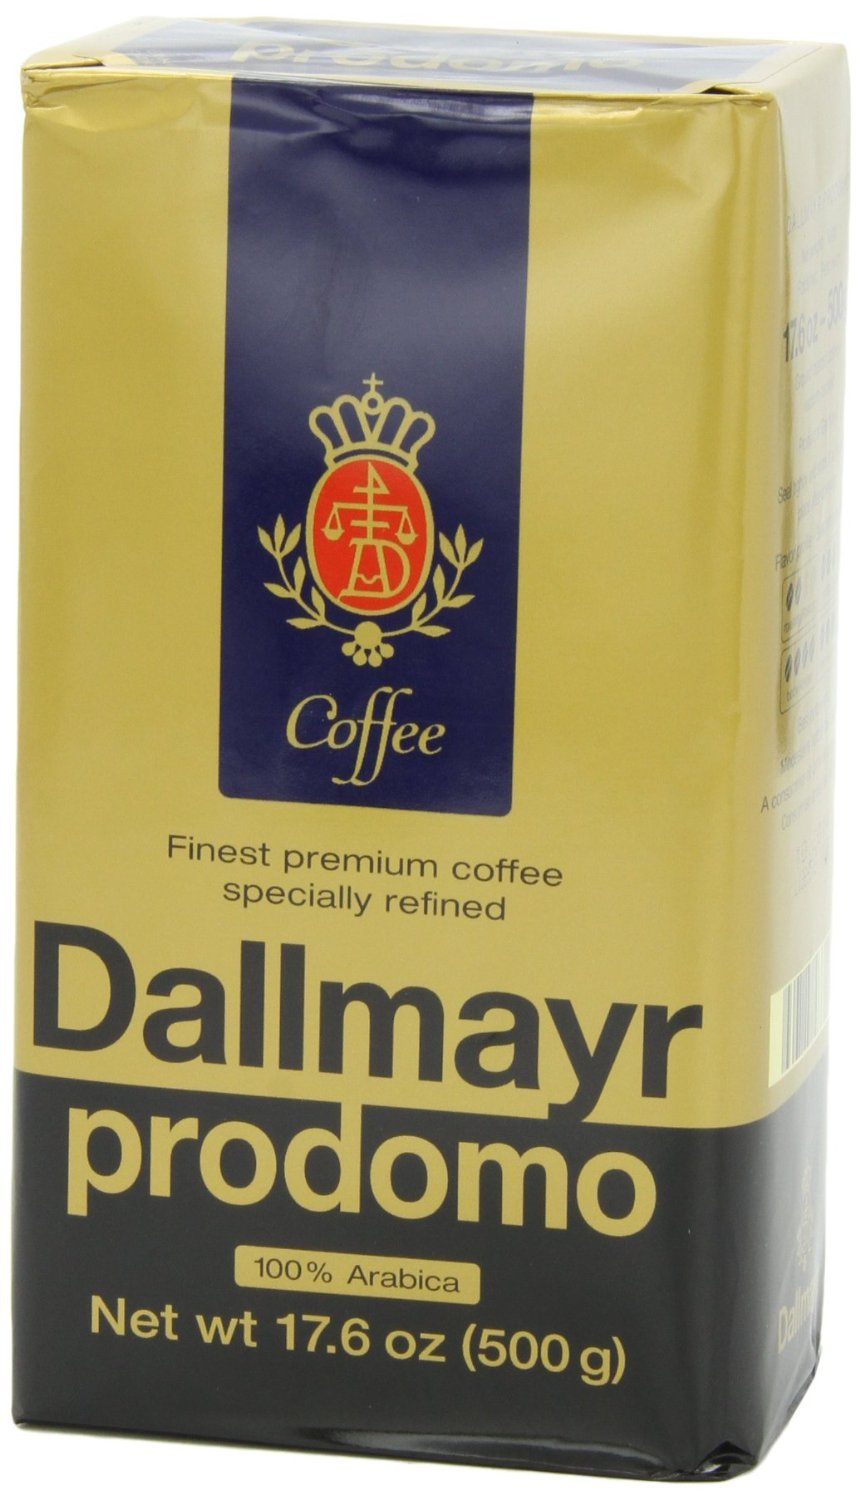 Dallmayr Prodomo Arabica Ground Coffee 17.6oz (6-pack) by Dallmayr